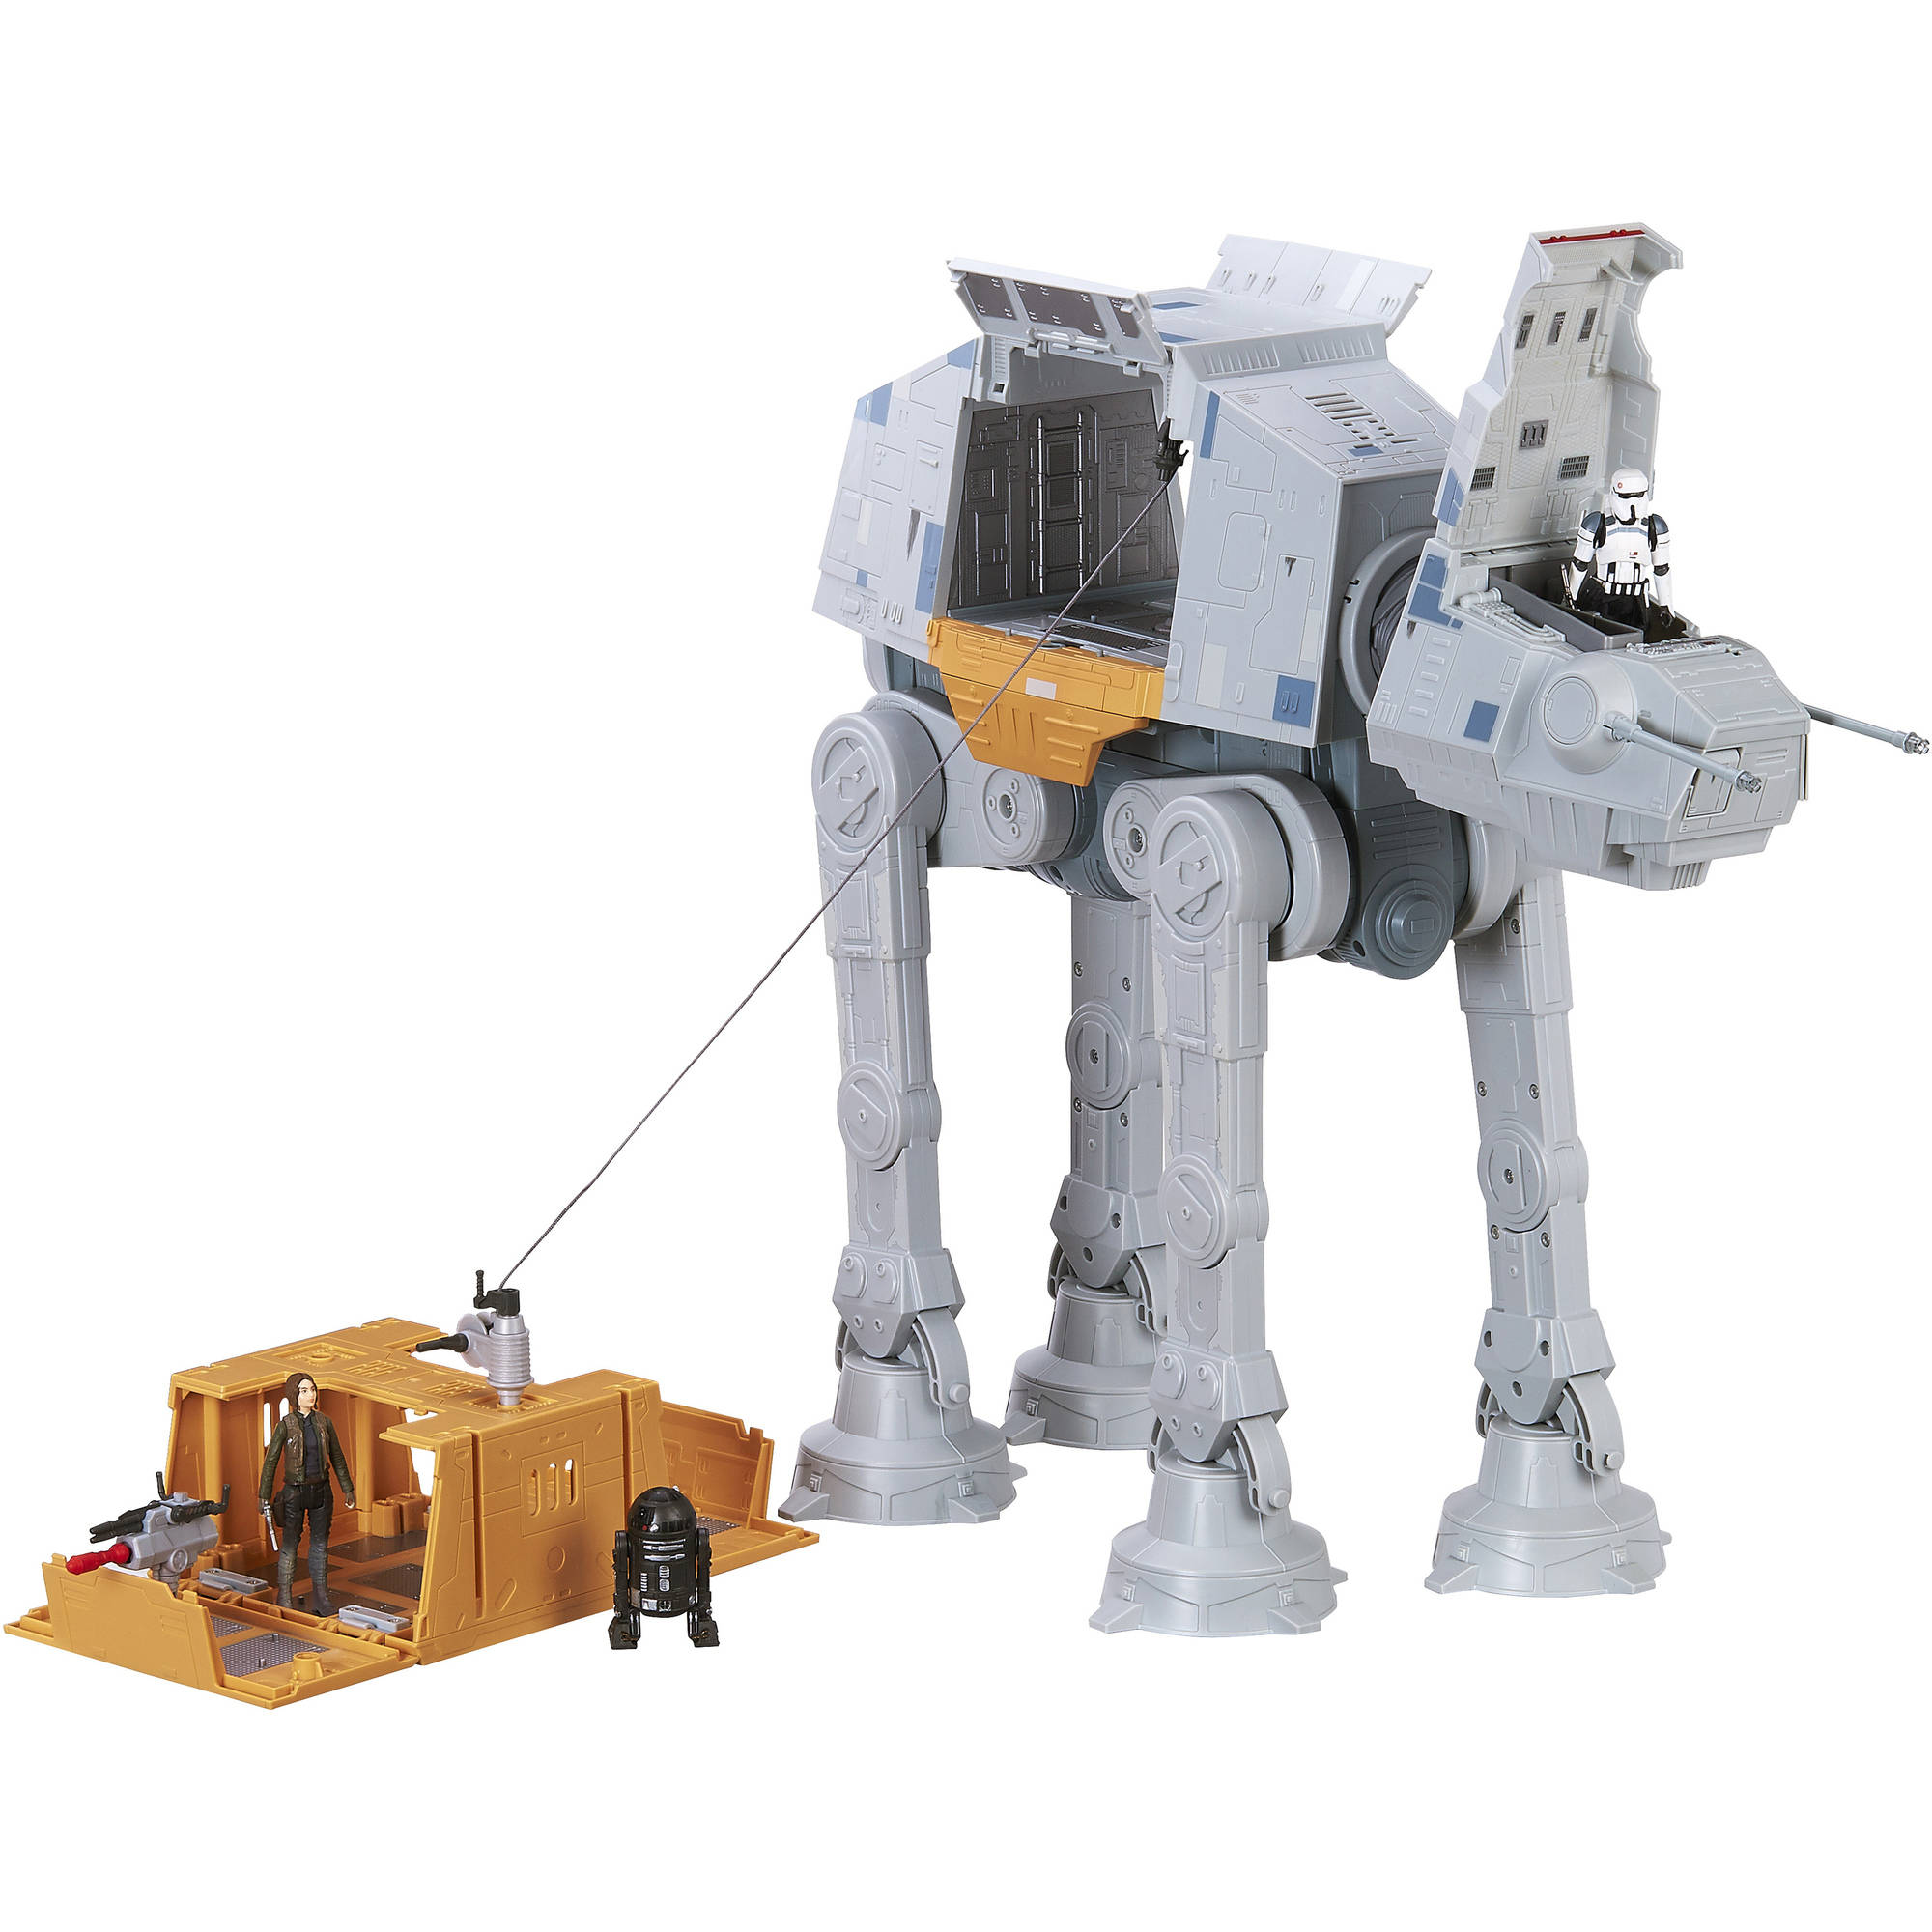 Star Wars Rogue One Rapid Fire Imperial AT-ACT by Hasbro